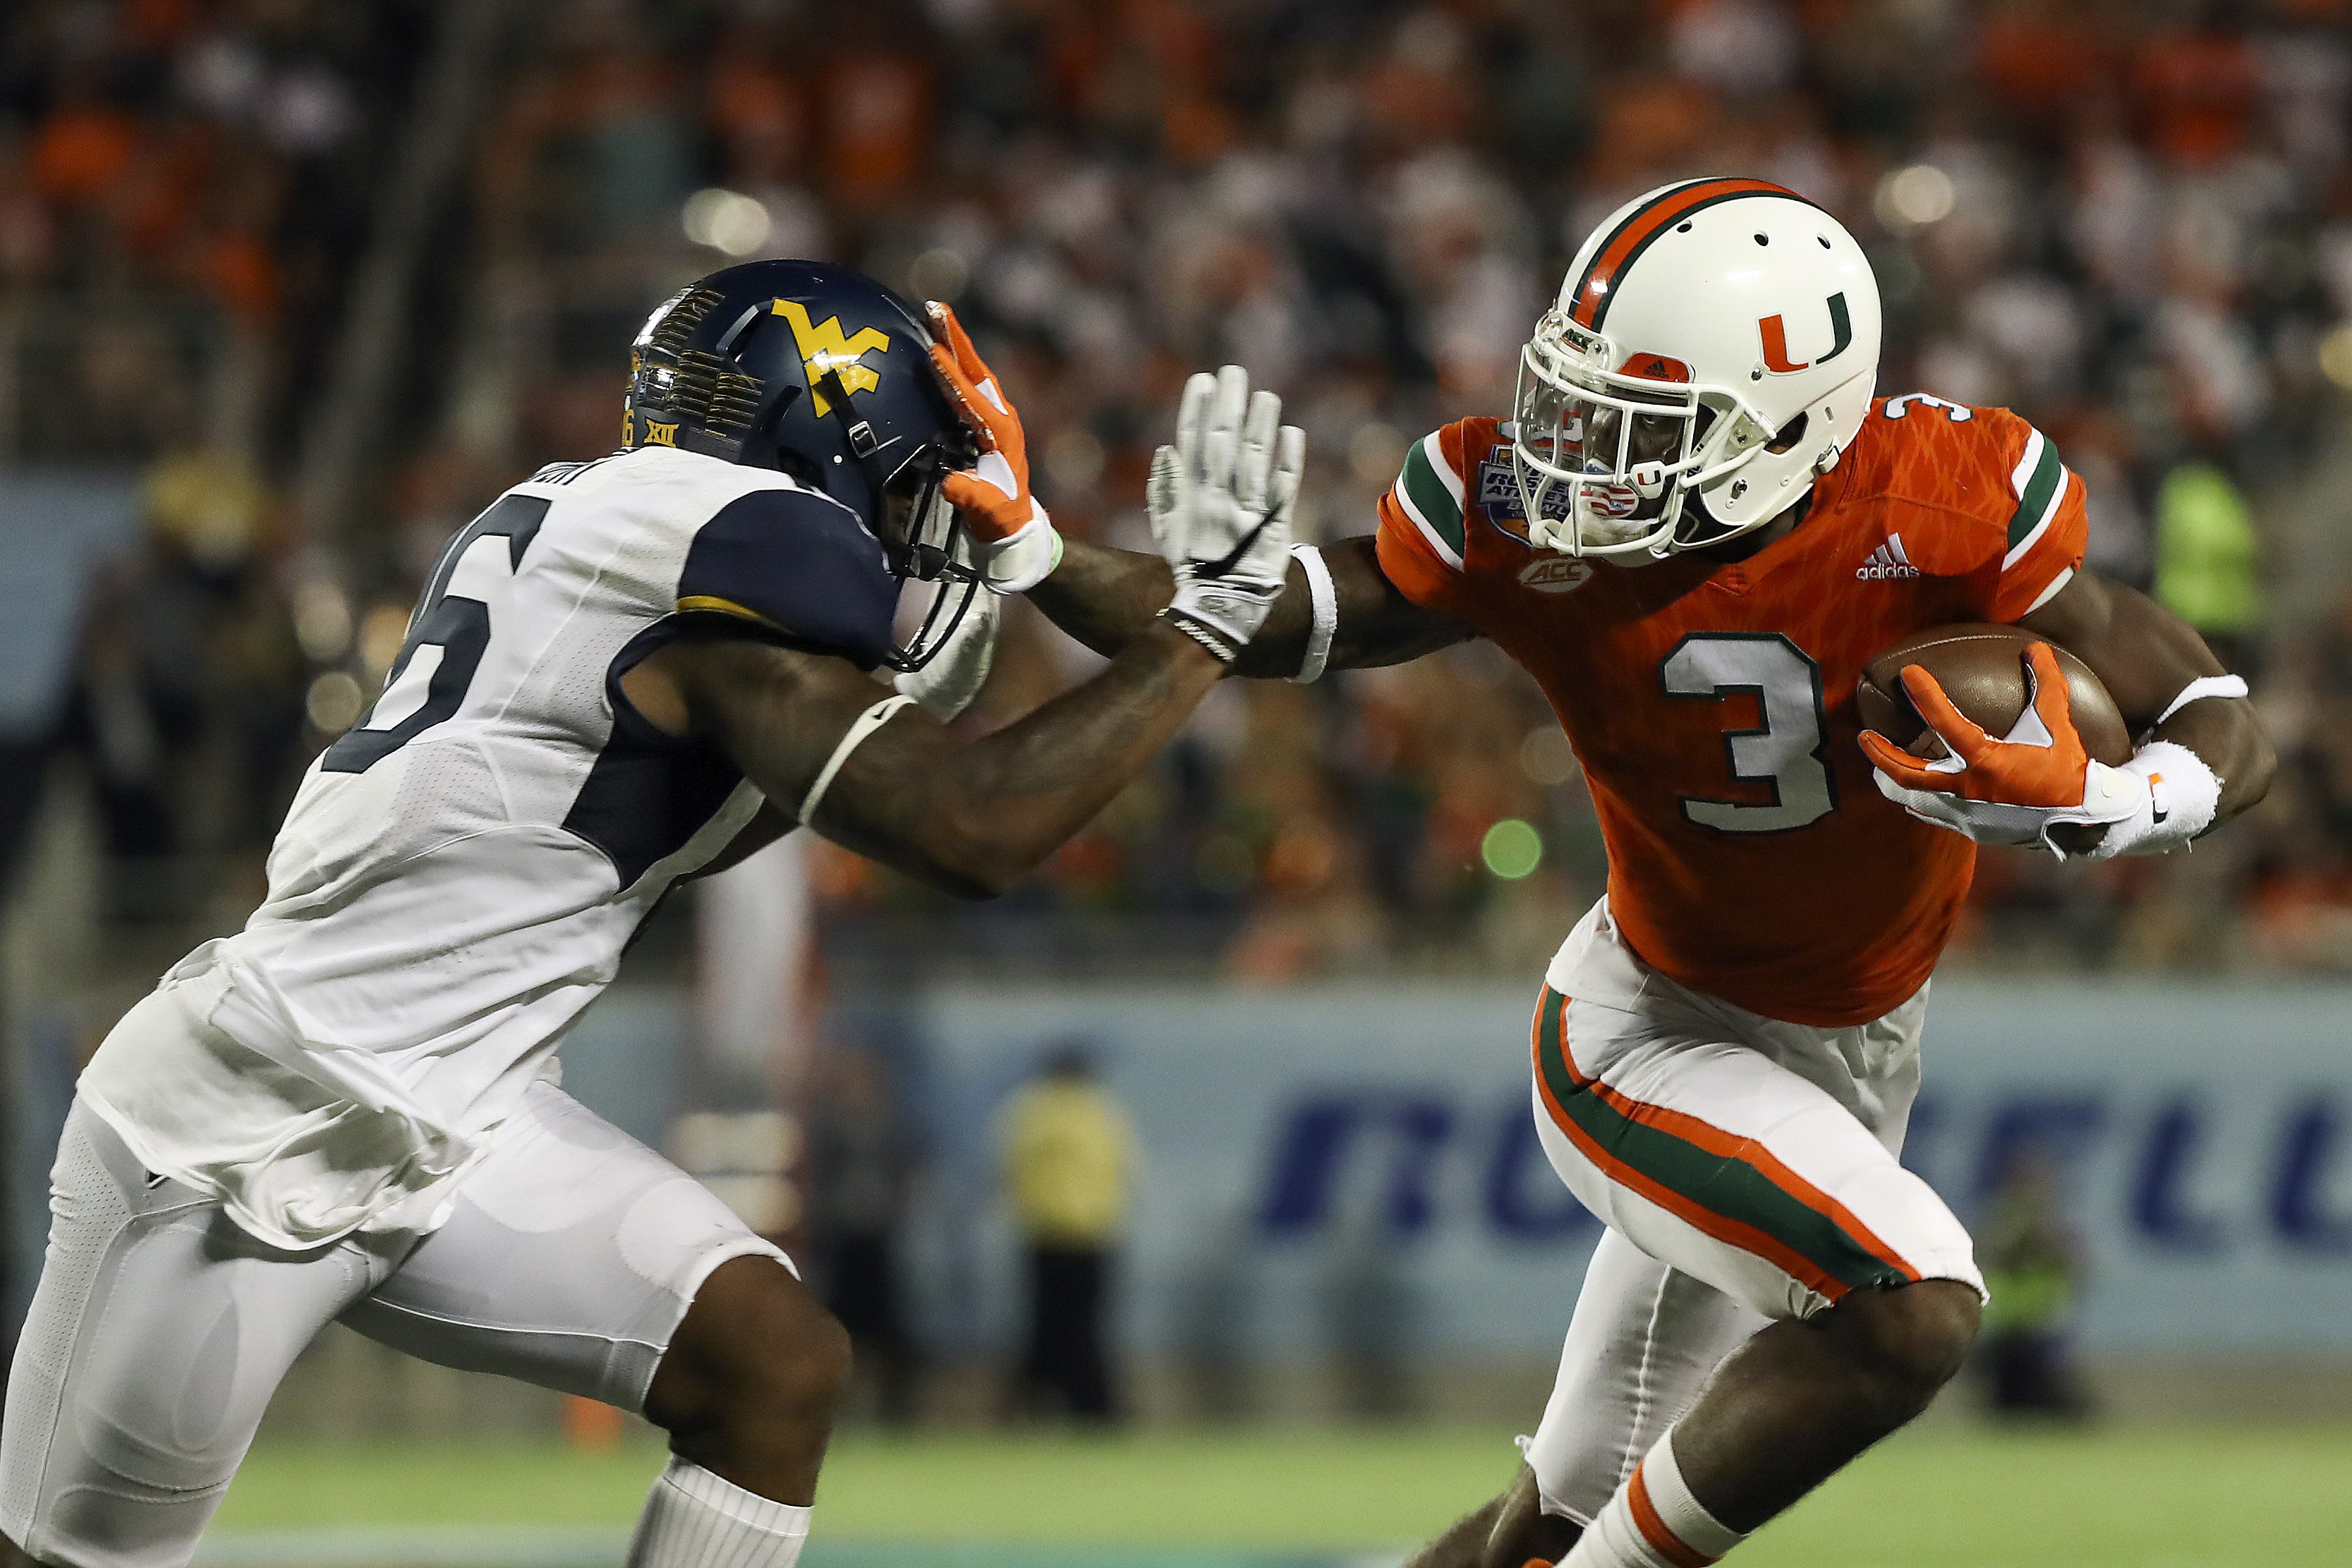 9772983-ncaa-football-russell-athletic-bowl-west-virginia-vs-miami